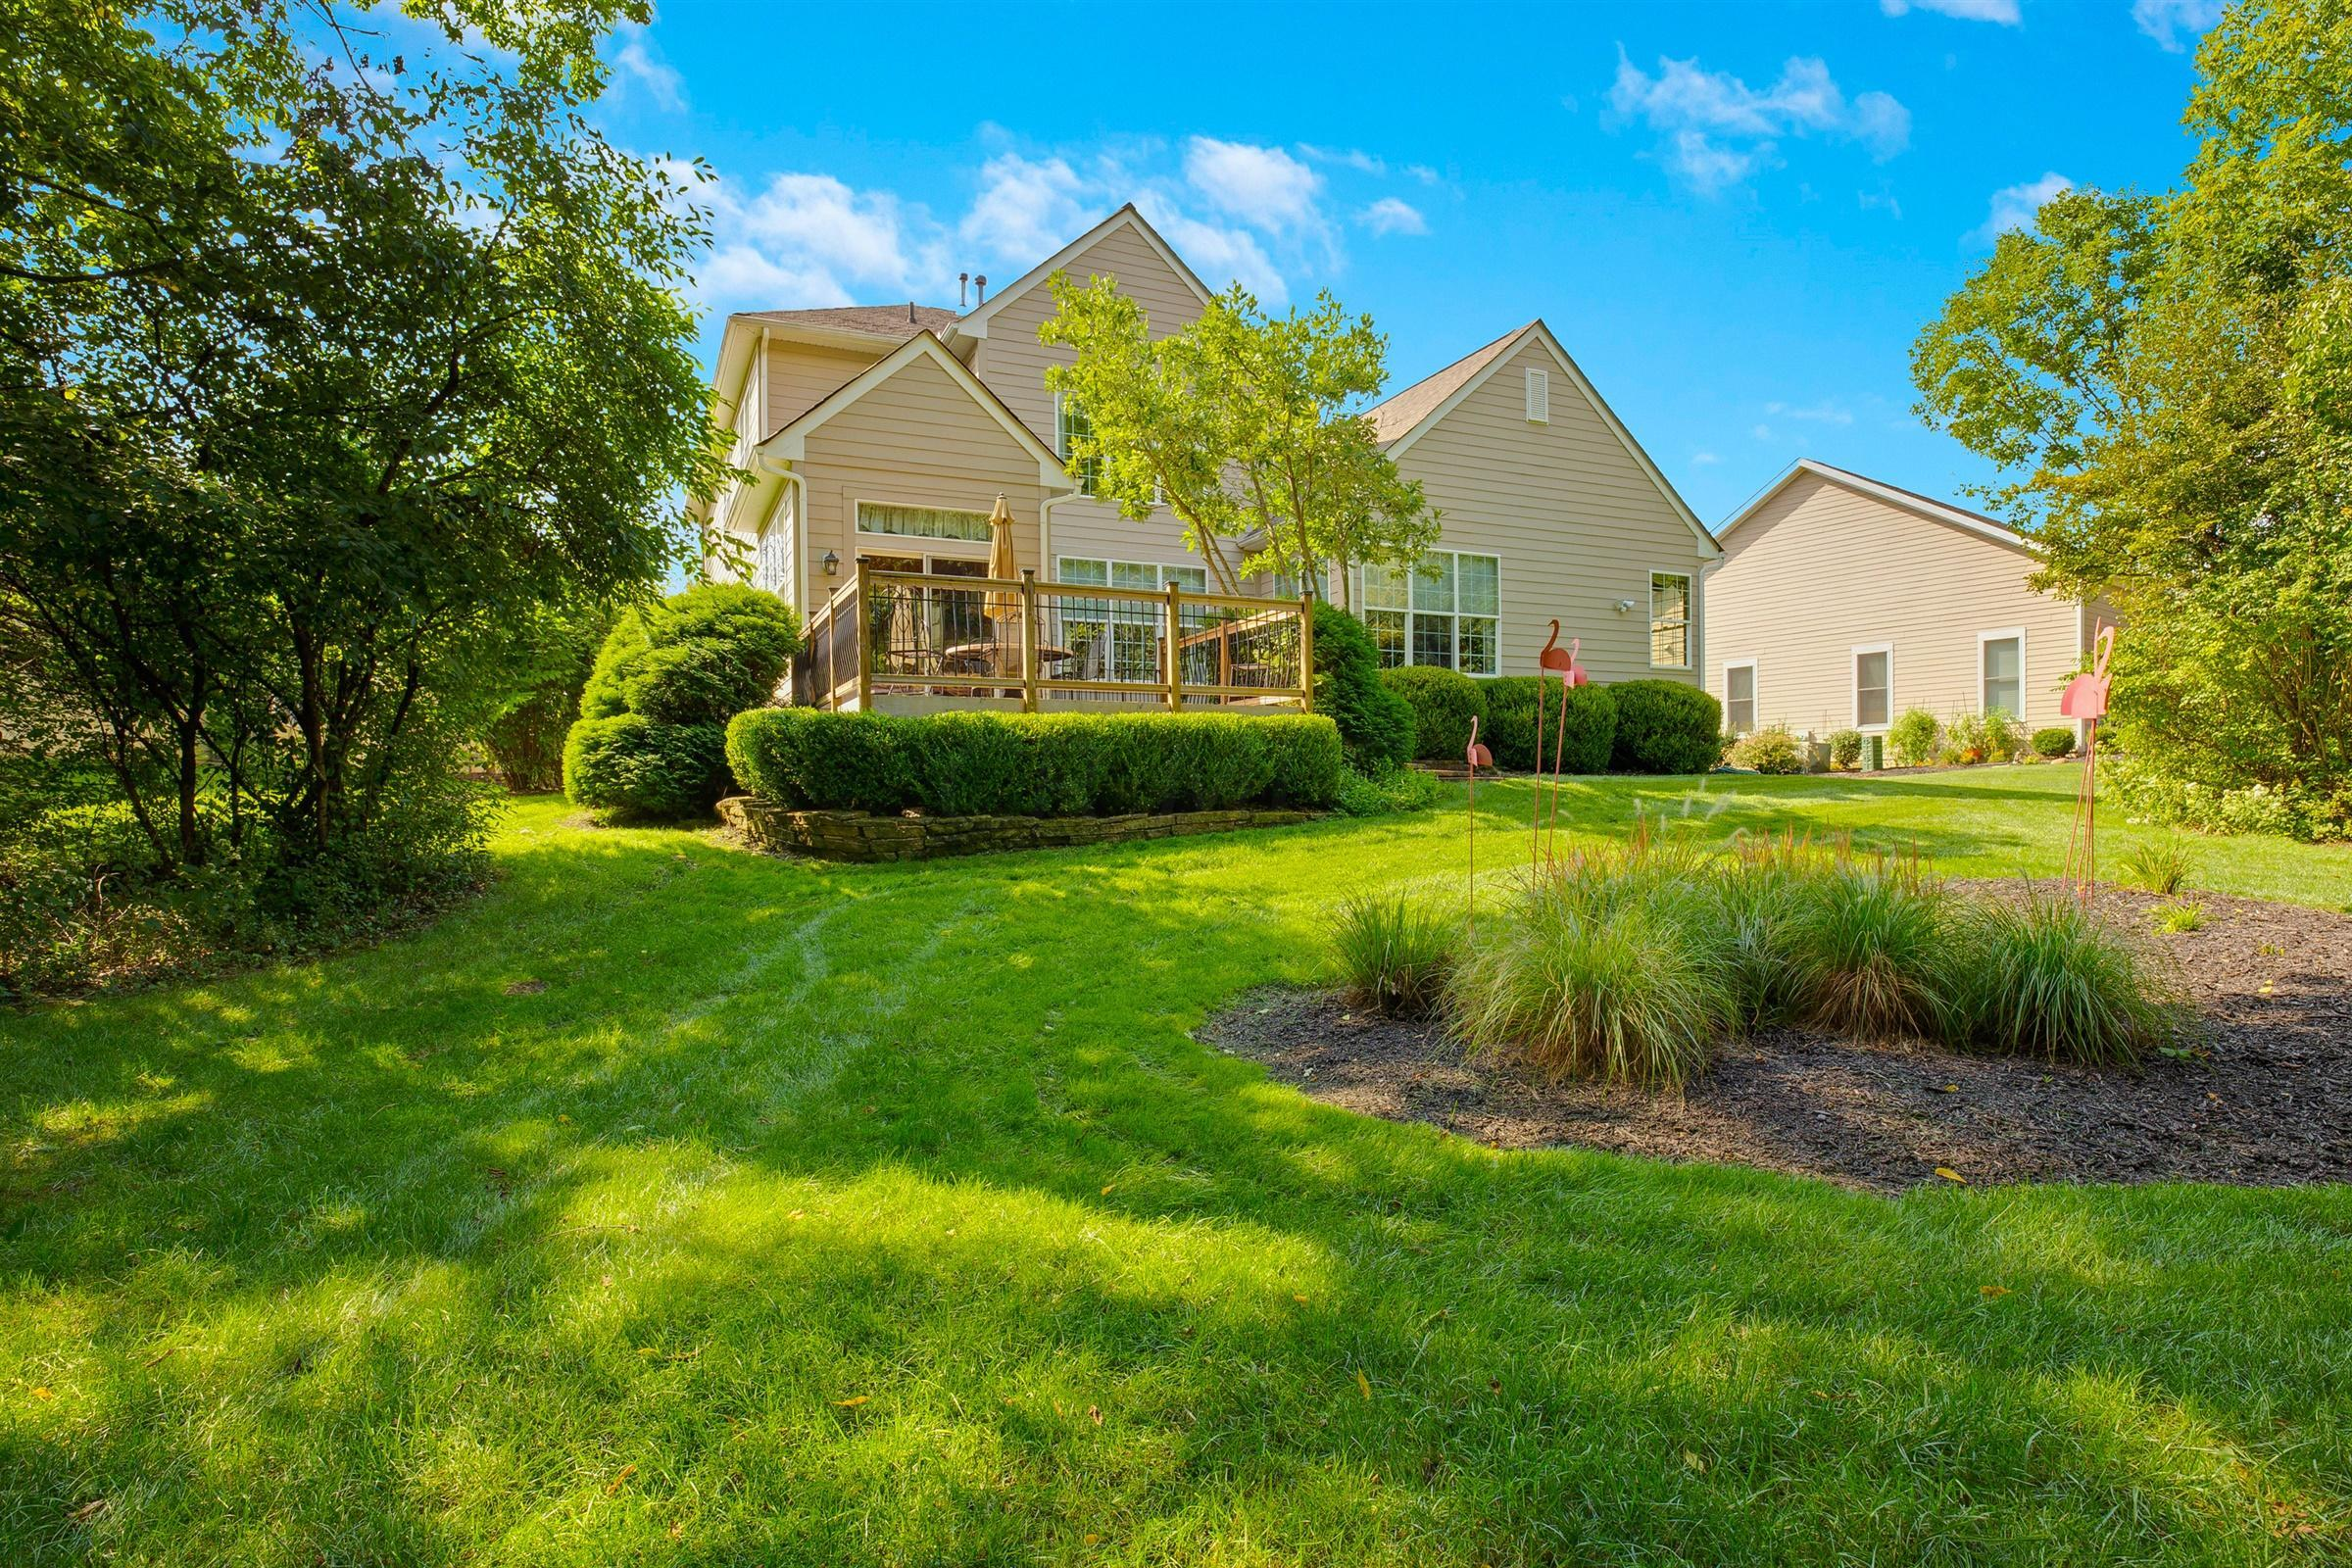 4737 St Medan Drive, Westerville, Ohio 43082, 4 Bedrooms Bedrooms, ,4 BathroomsBathrooms,Residential,For Sale,St Medan,220031856